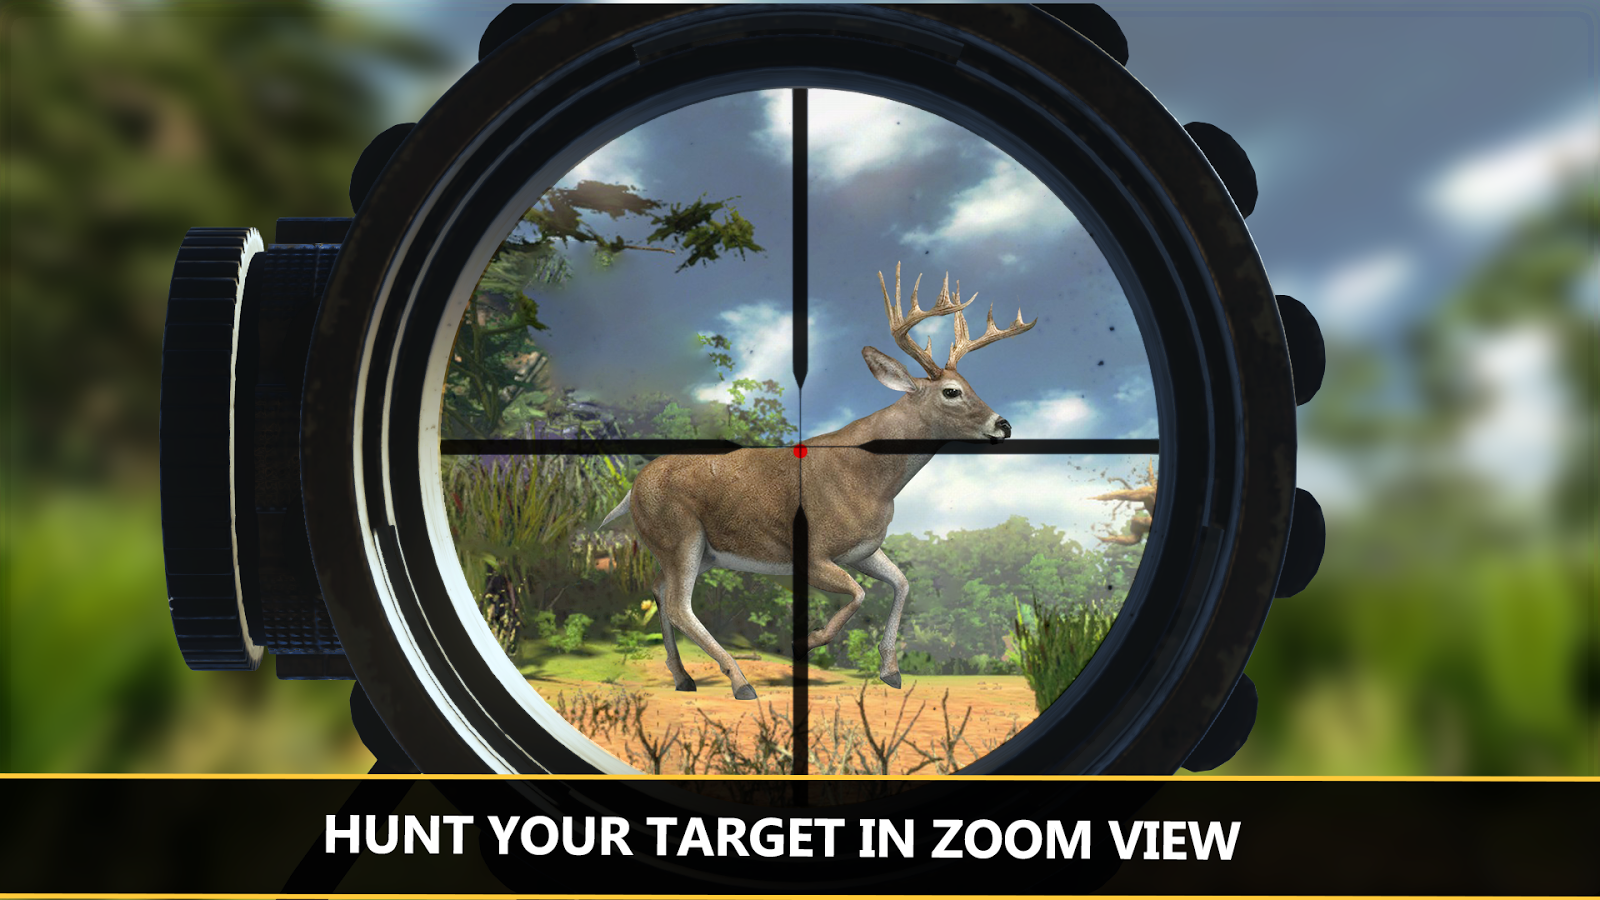 Top 5 Best Android Hunting Games Play & Become an Expert Hunter